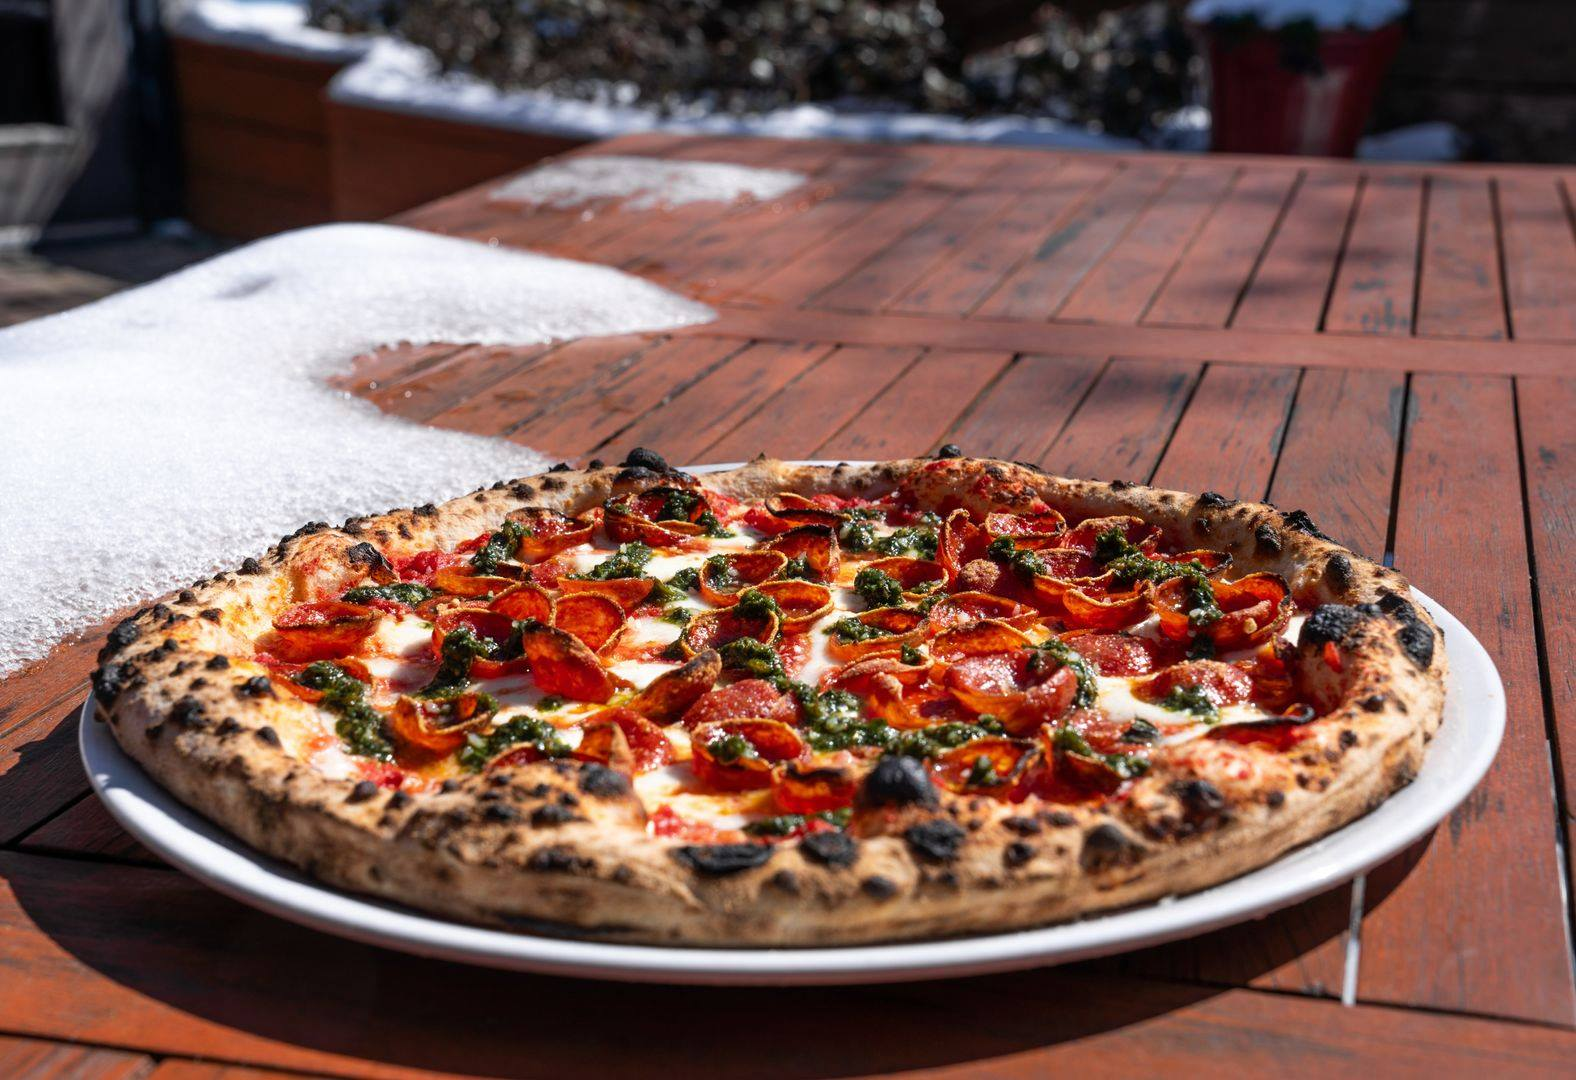 a pepperoni pizza resting on picnic table outdoors on a sunny day